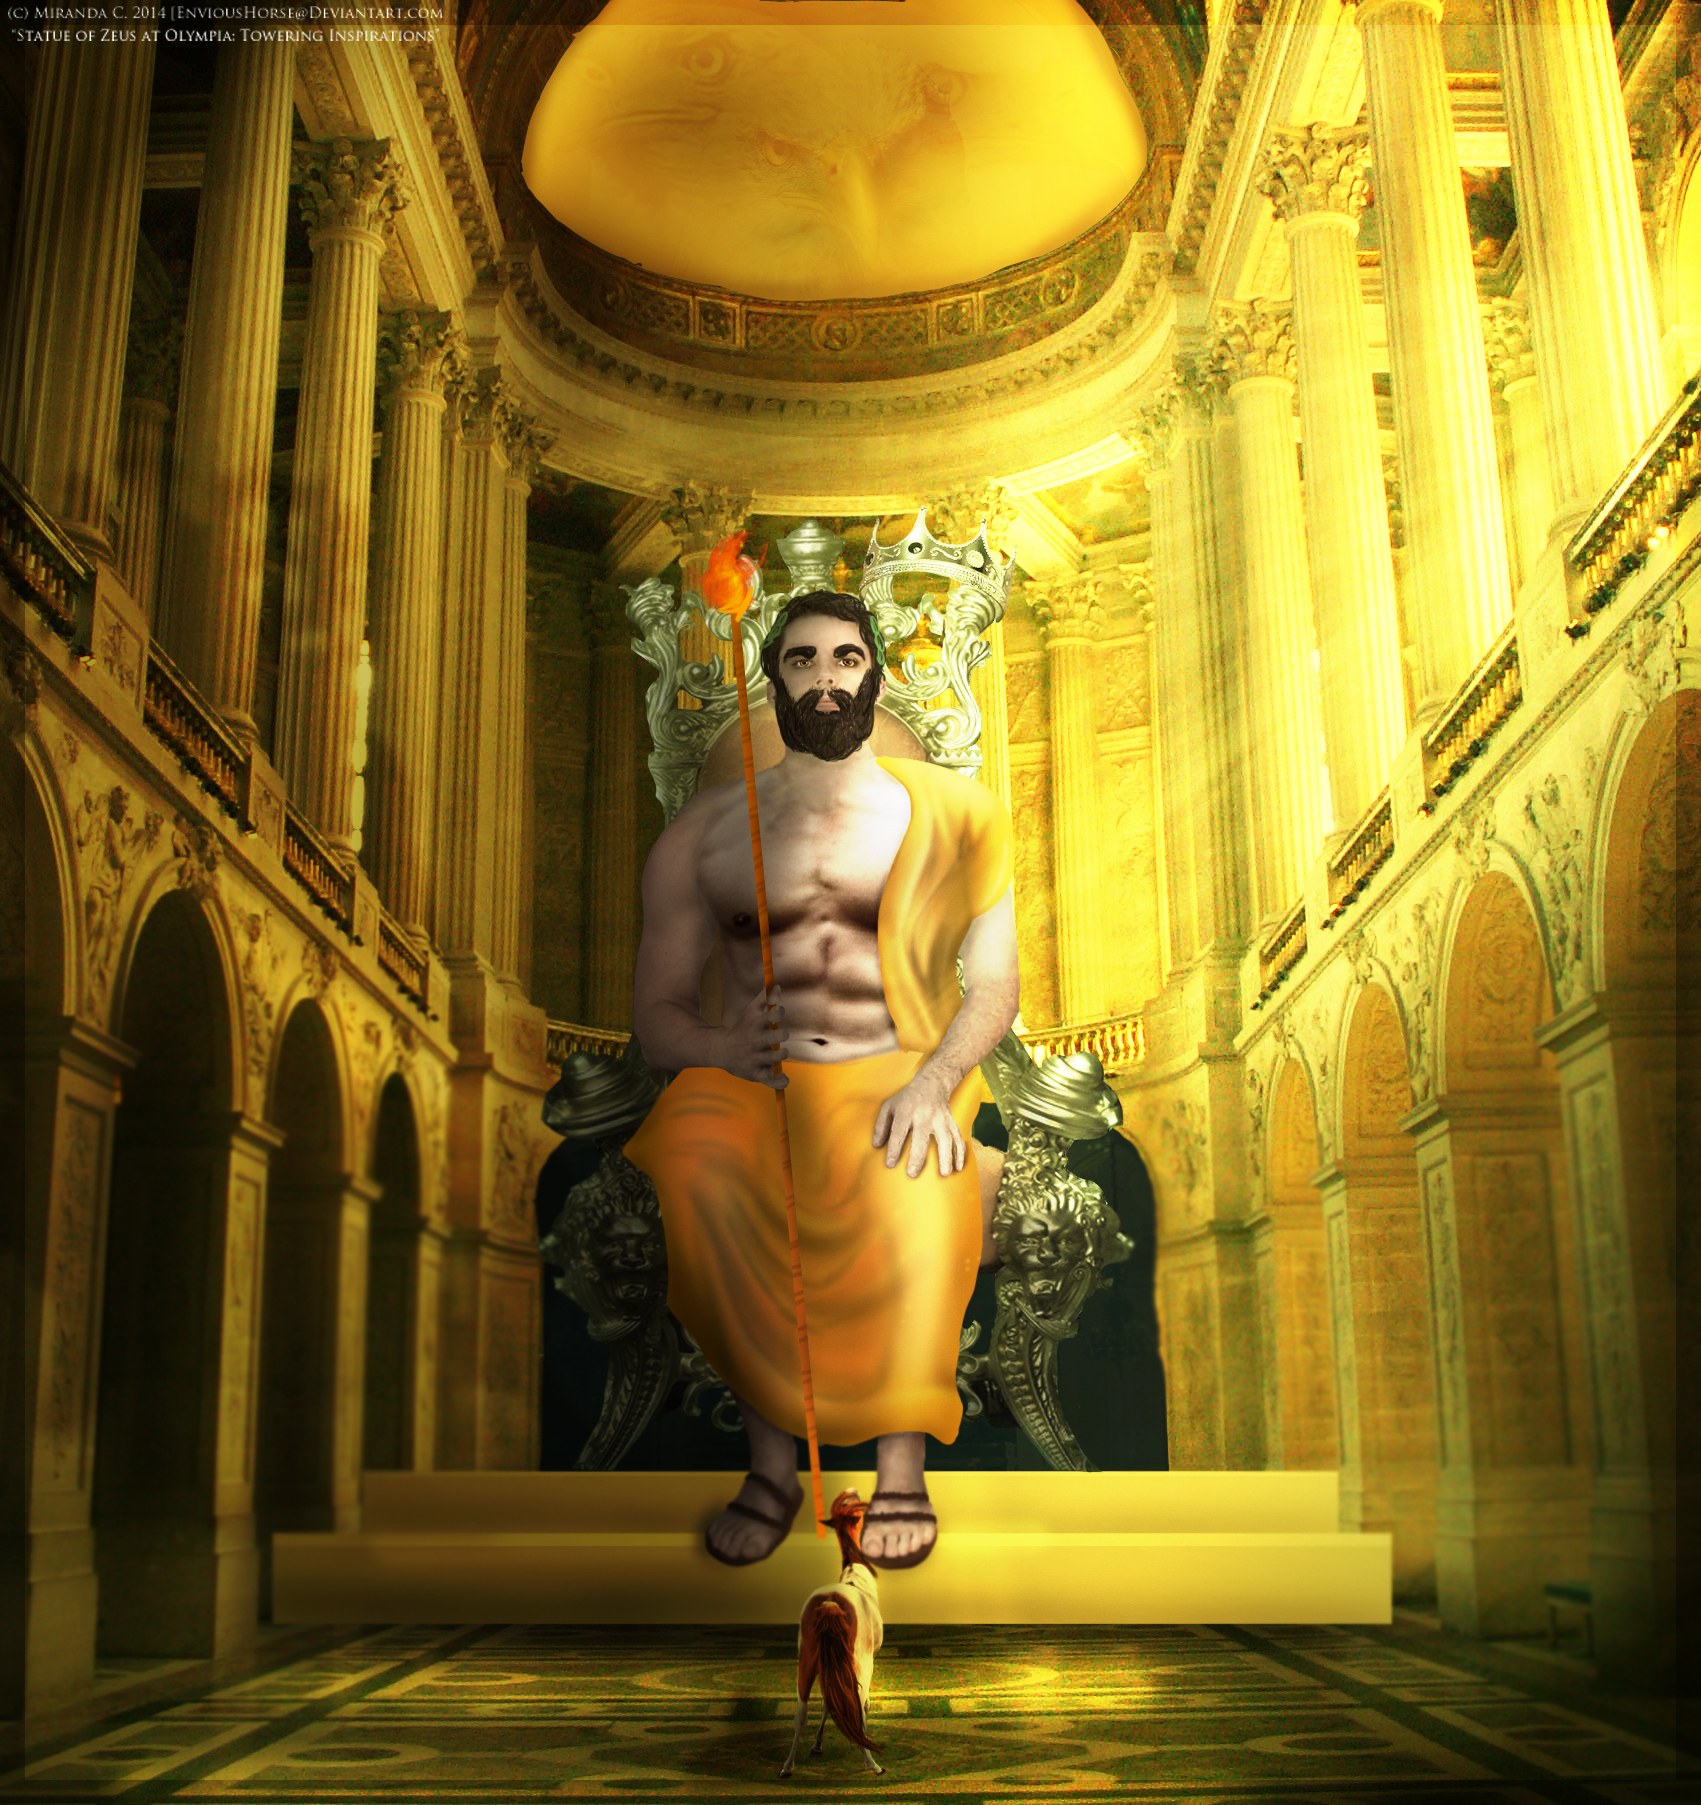 Statue of Zeus at Olympia: Towering Inspirations by EnviousHorse